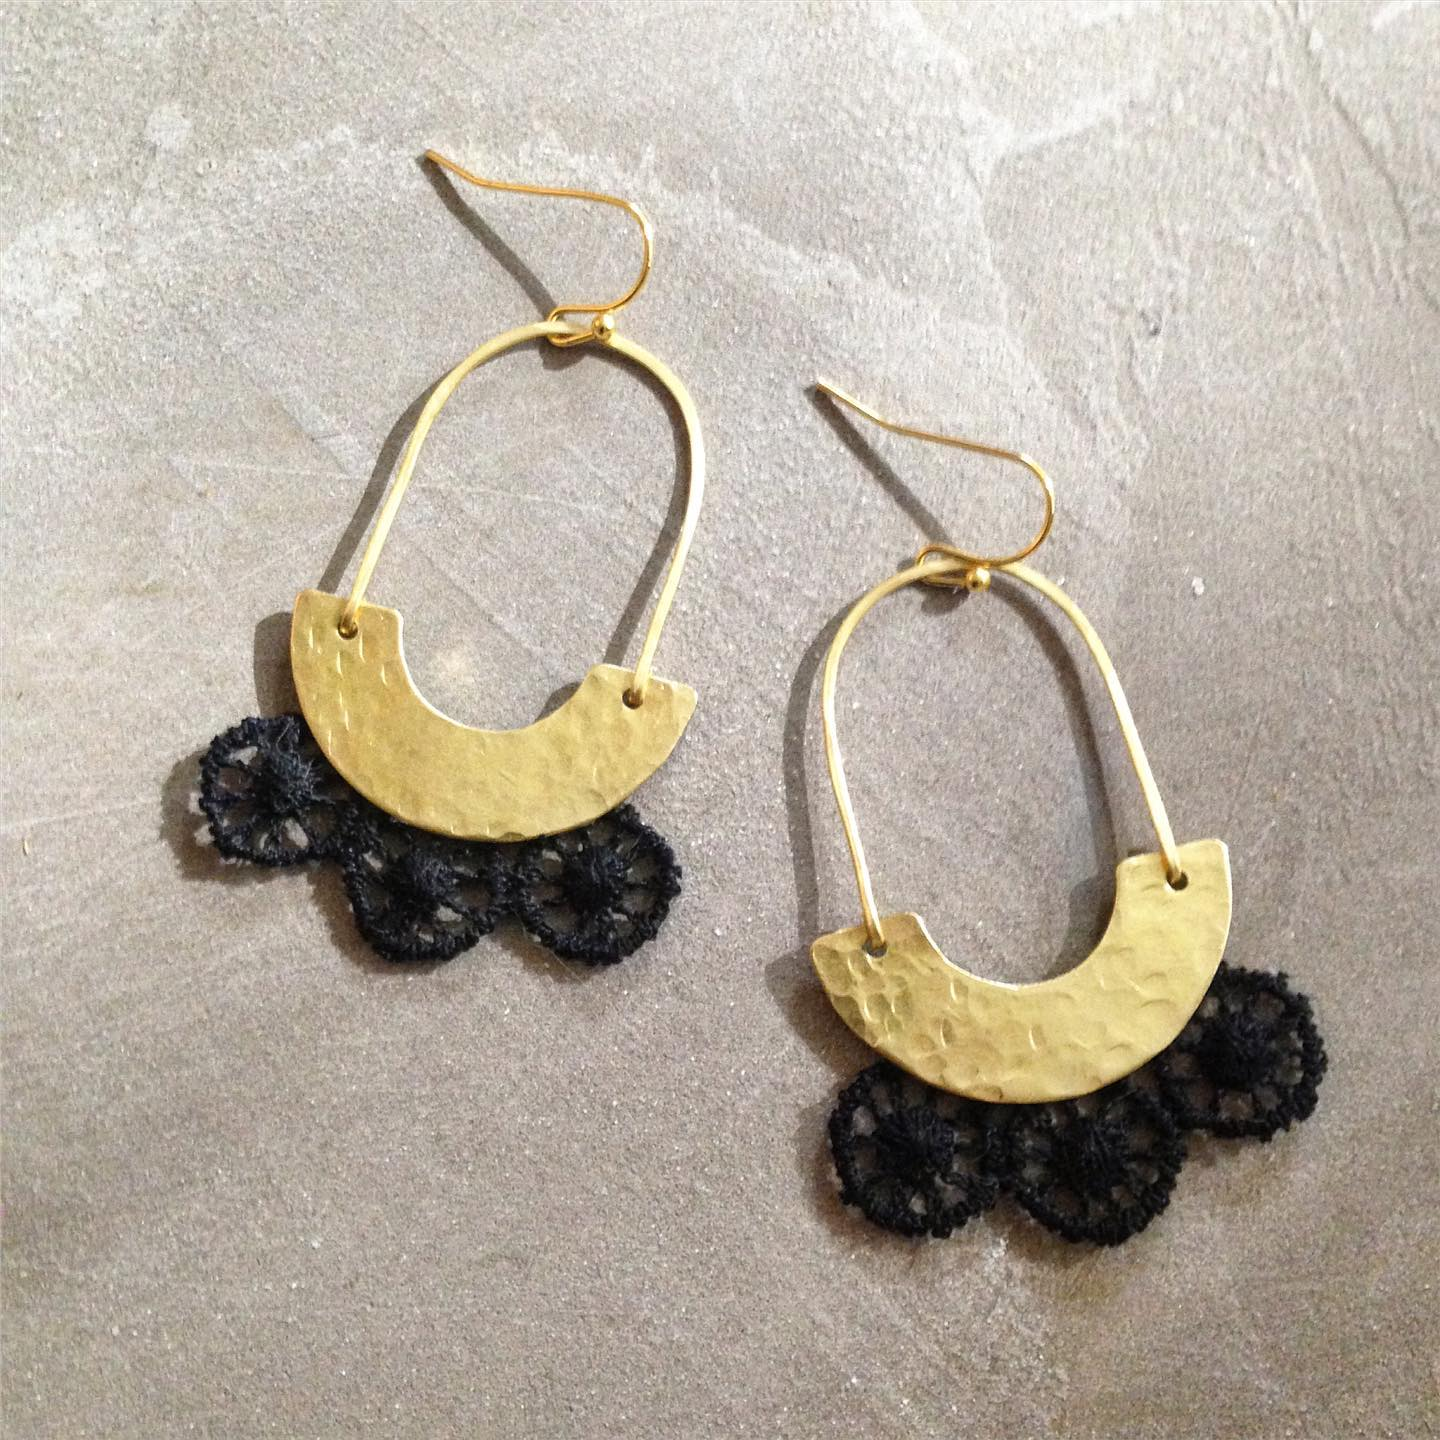 White Owl Jewelry - Black Lace + Hammered Brass Earrings, White Owl, Handcrafted Home Goods and Gifts